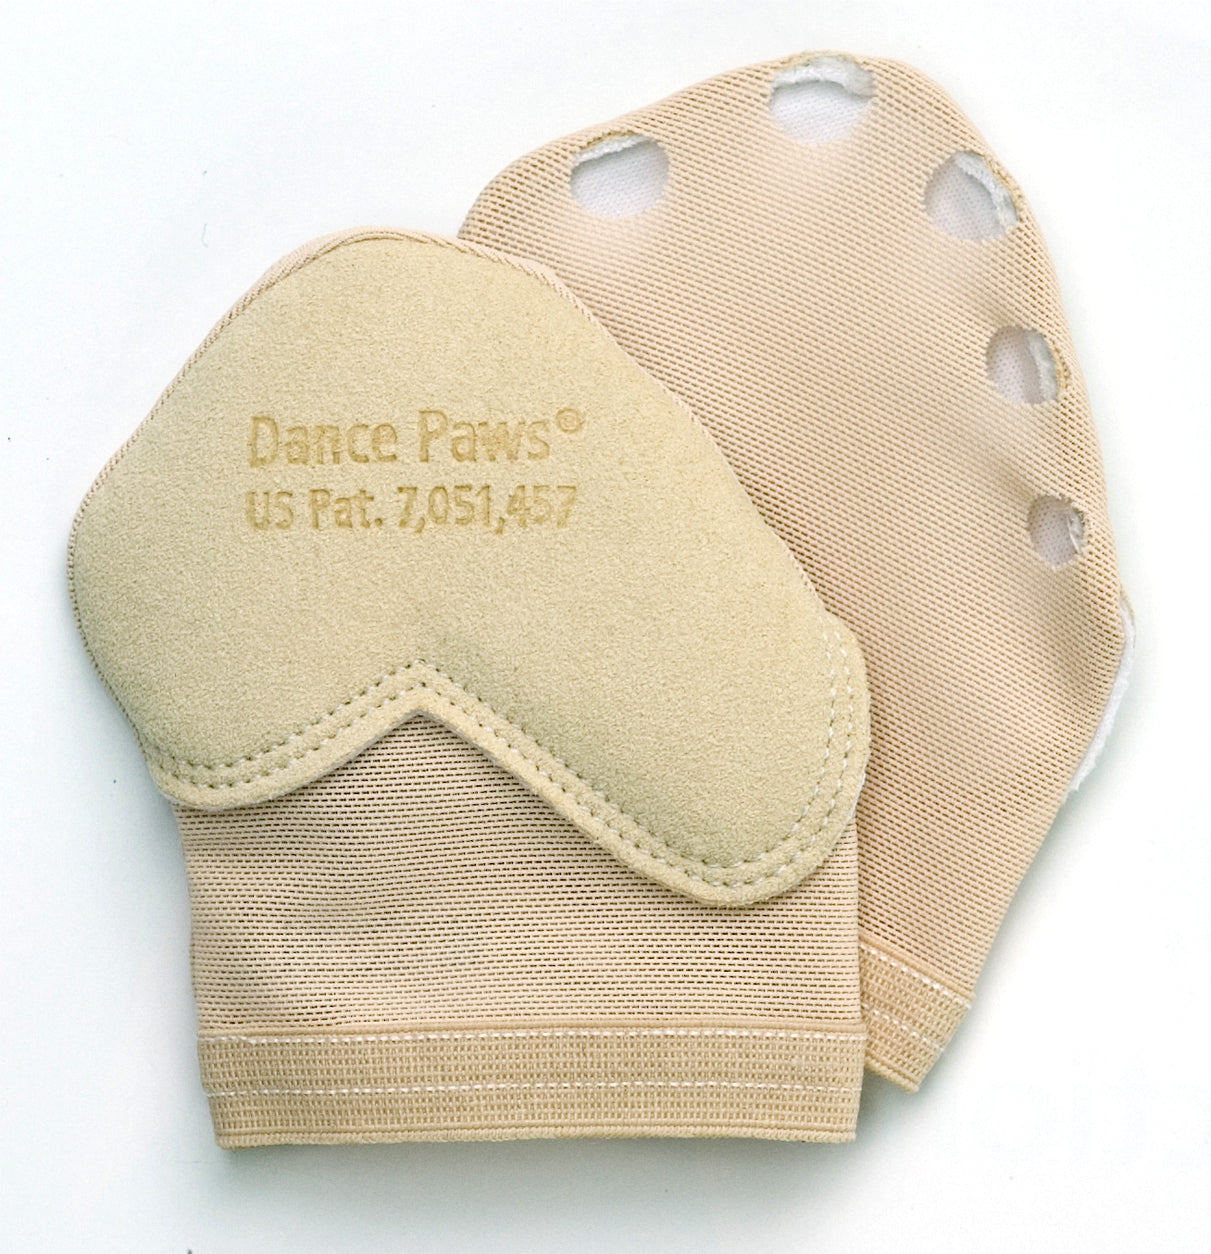 Dance Paws - Padded Sole